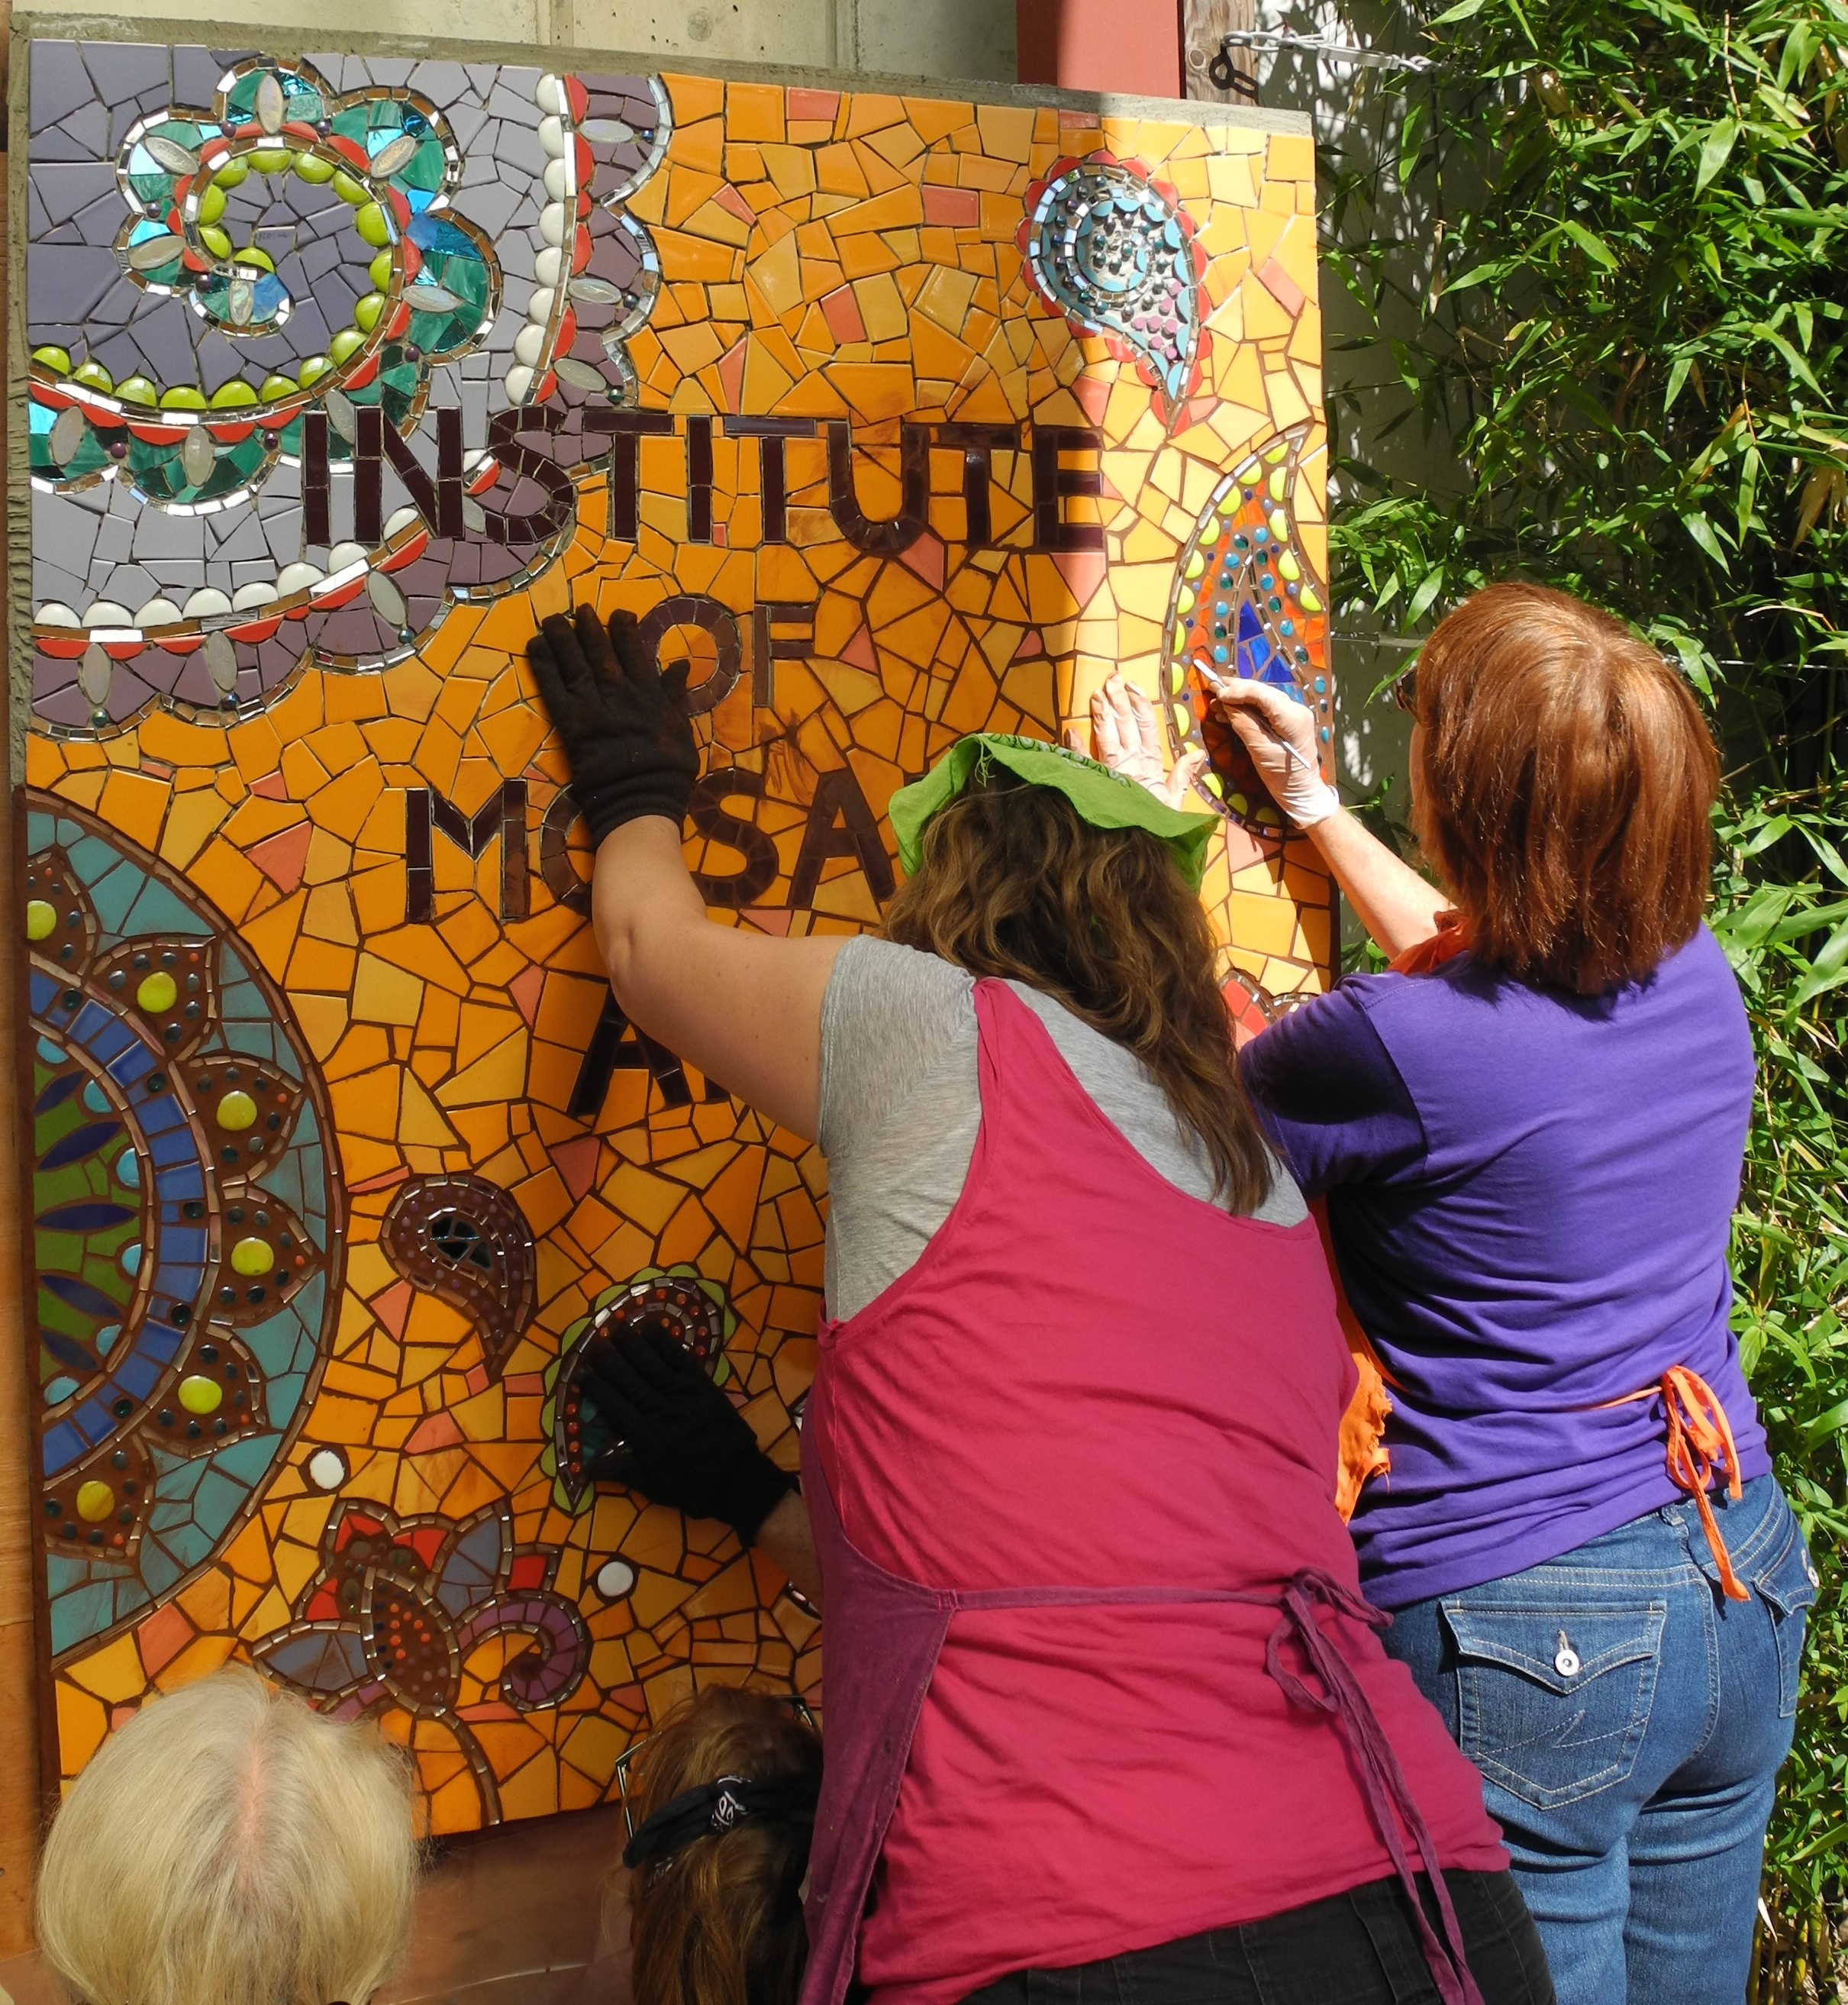 Production team working on Laurel True's mosaic mural at the Institute of Mosaic Art in Berkeley, CA.